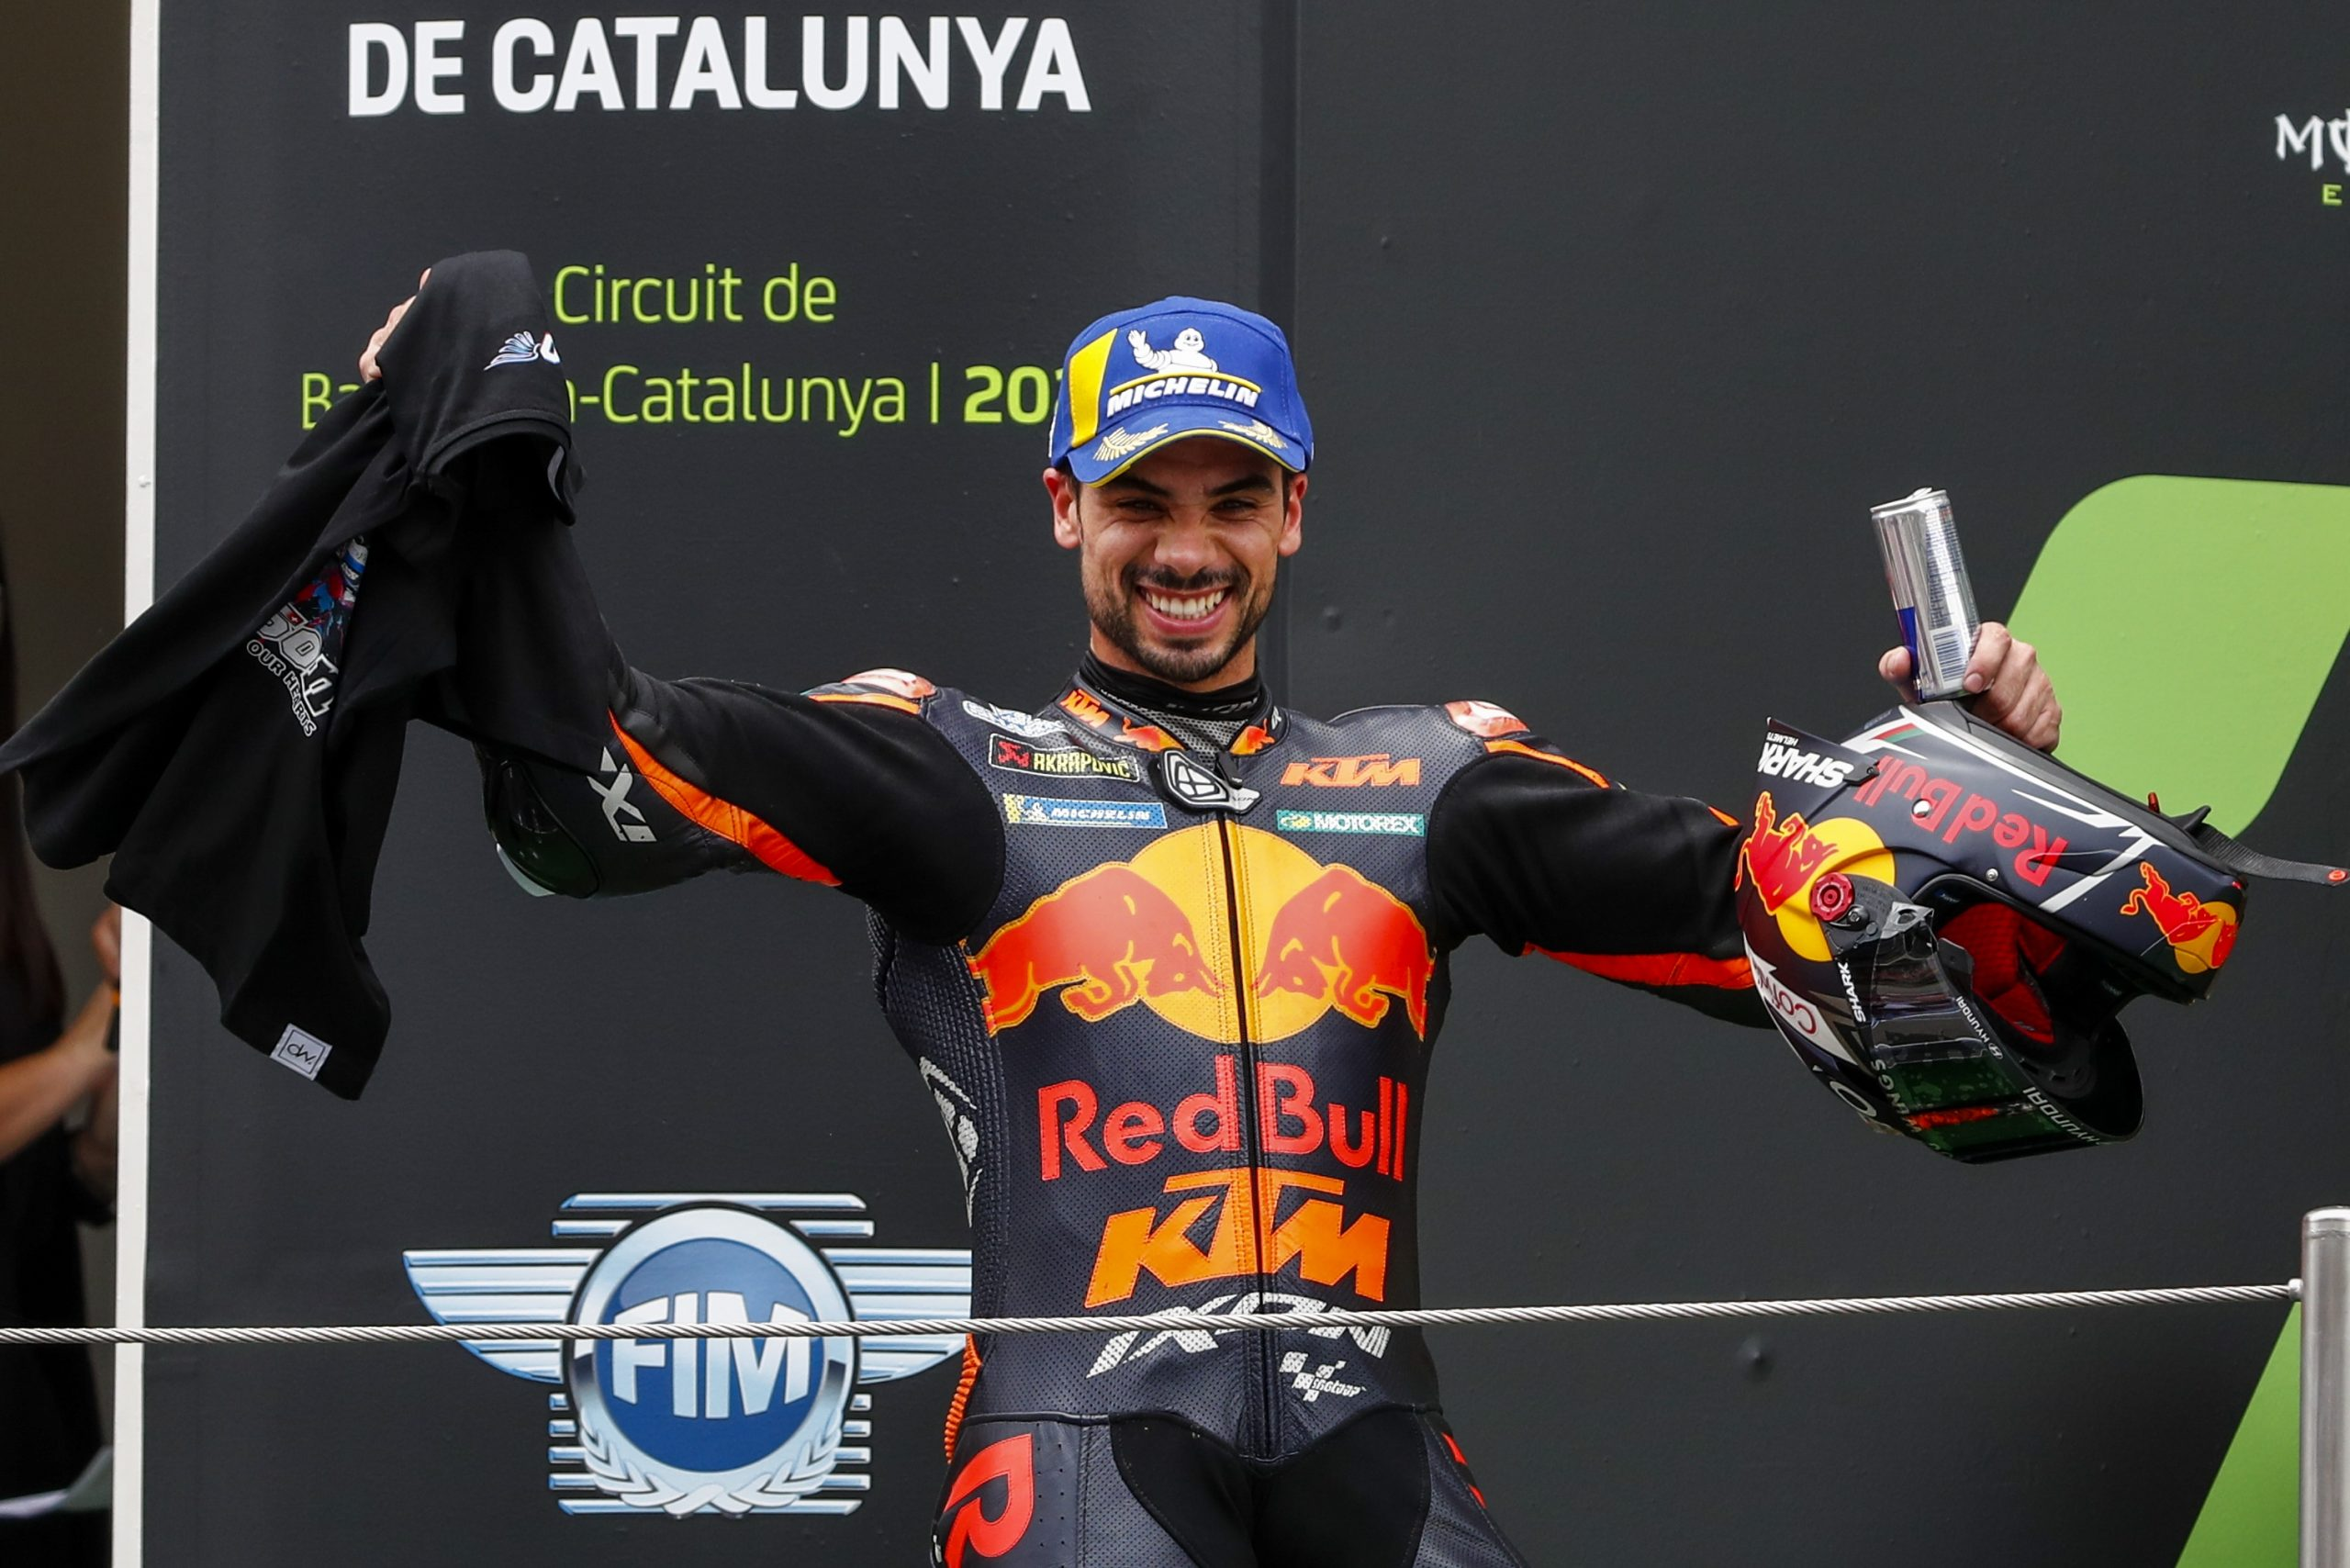 Oliveira wins MotoGP race in front of nearly 20,000 in Spain